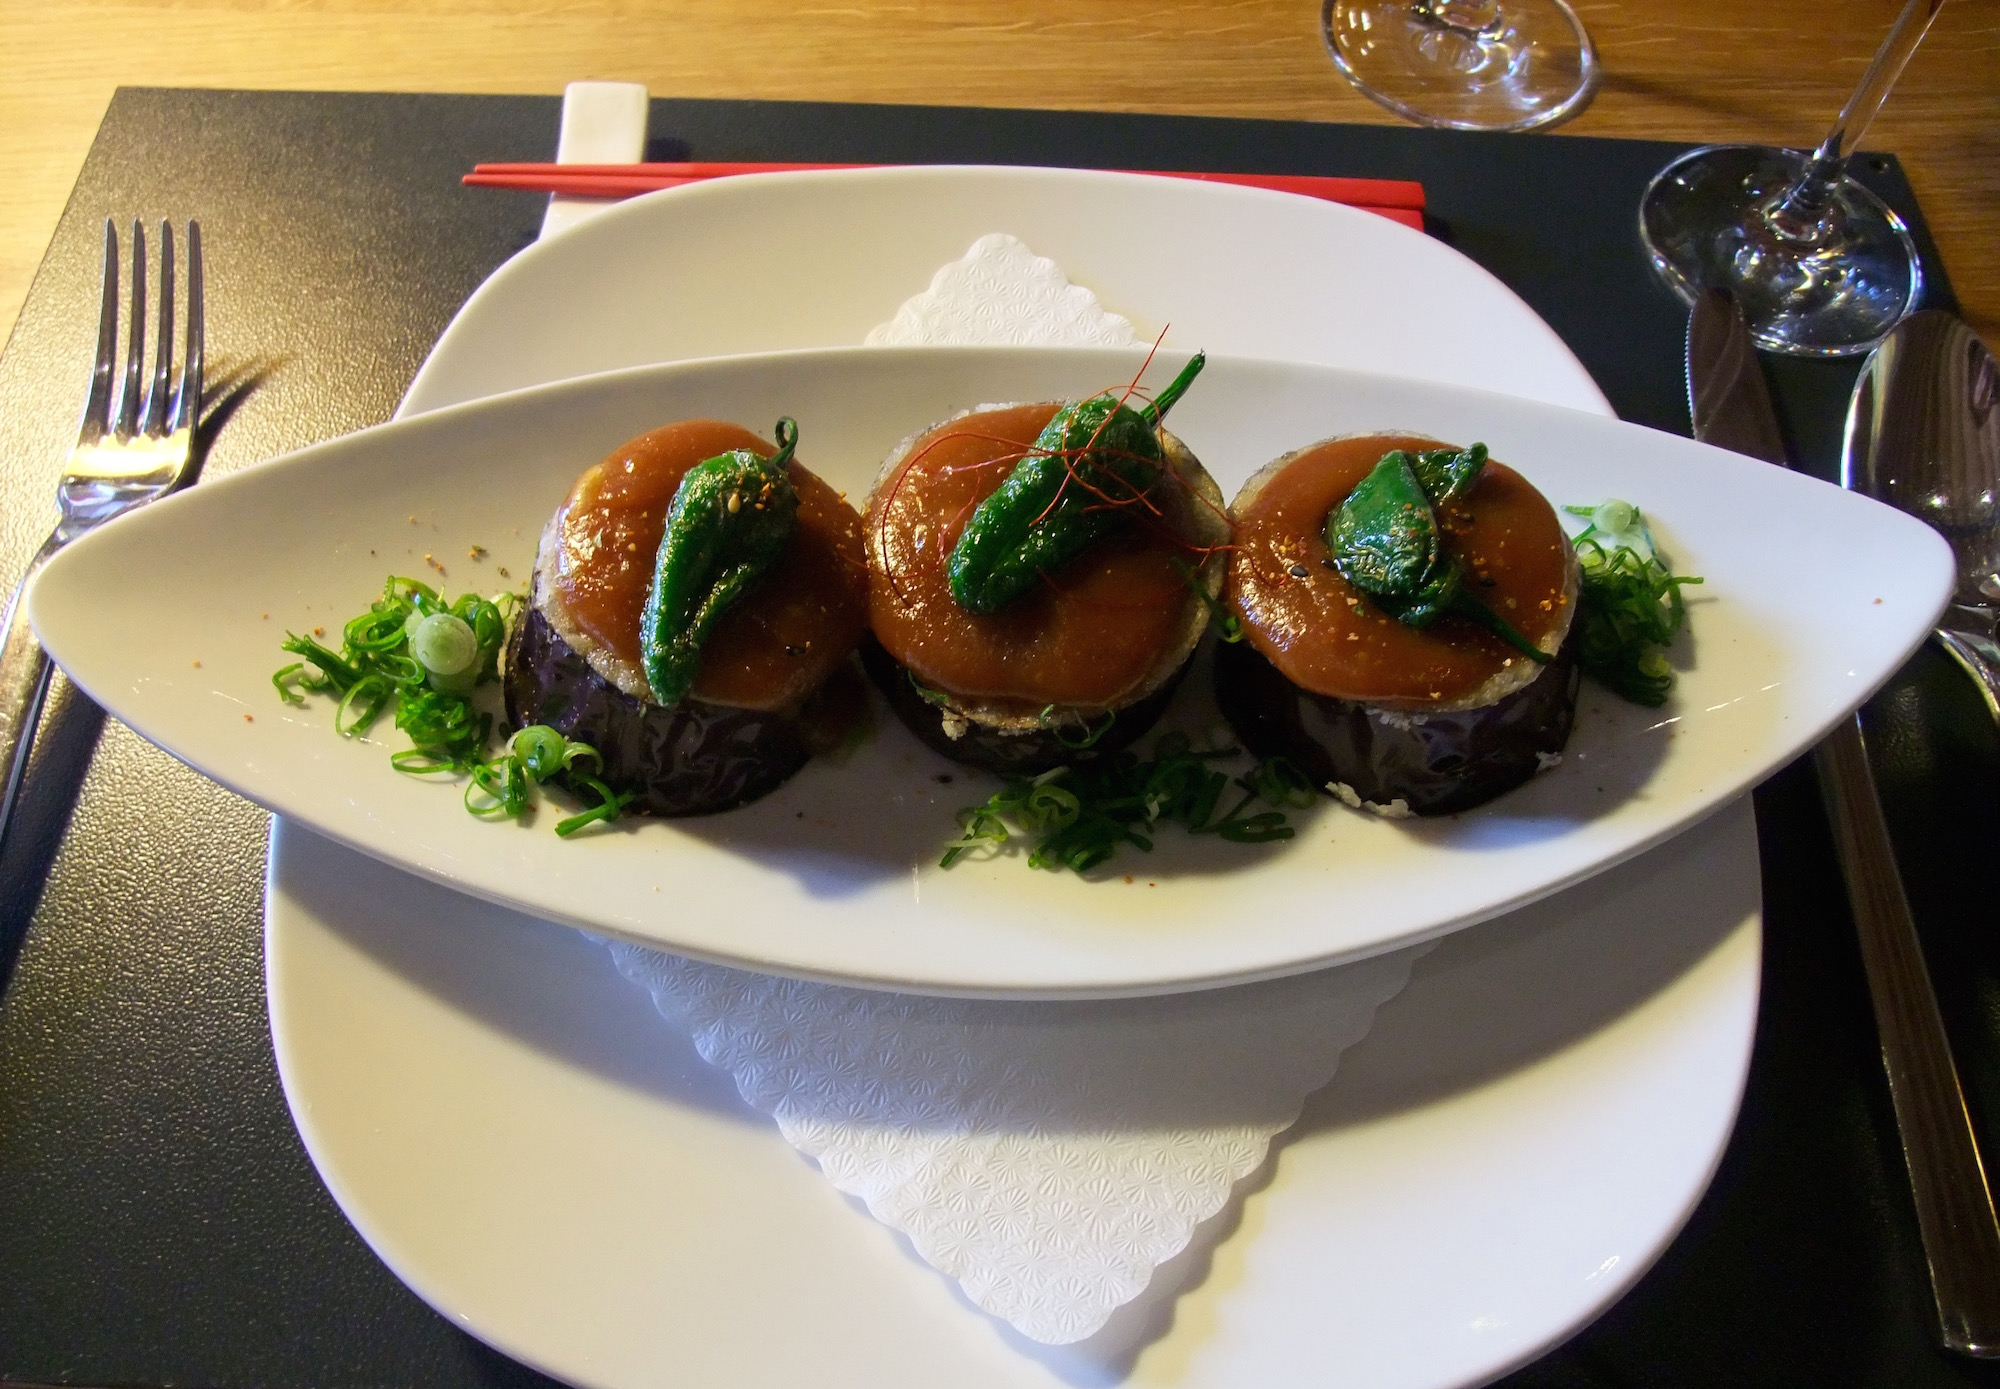 Eggplant with miso paste and peppers appetizer